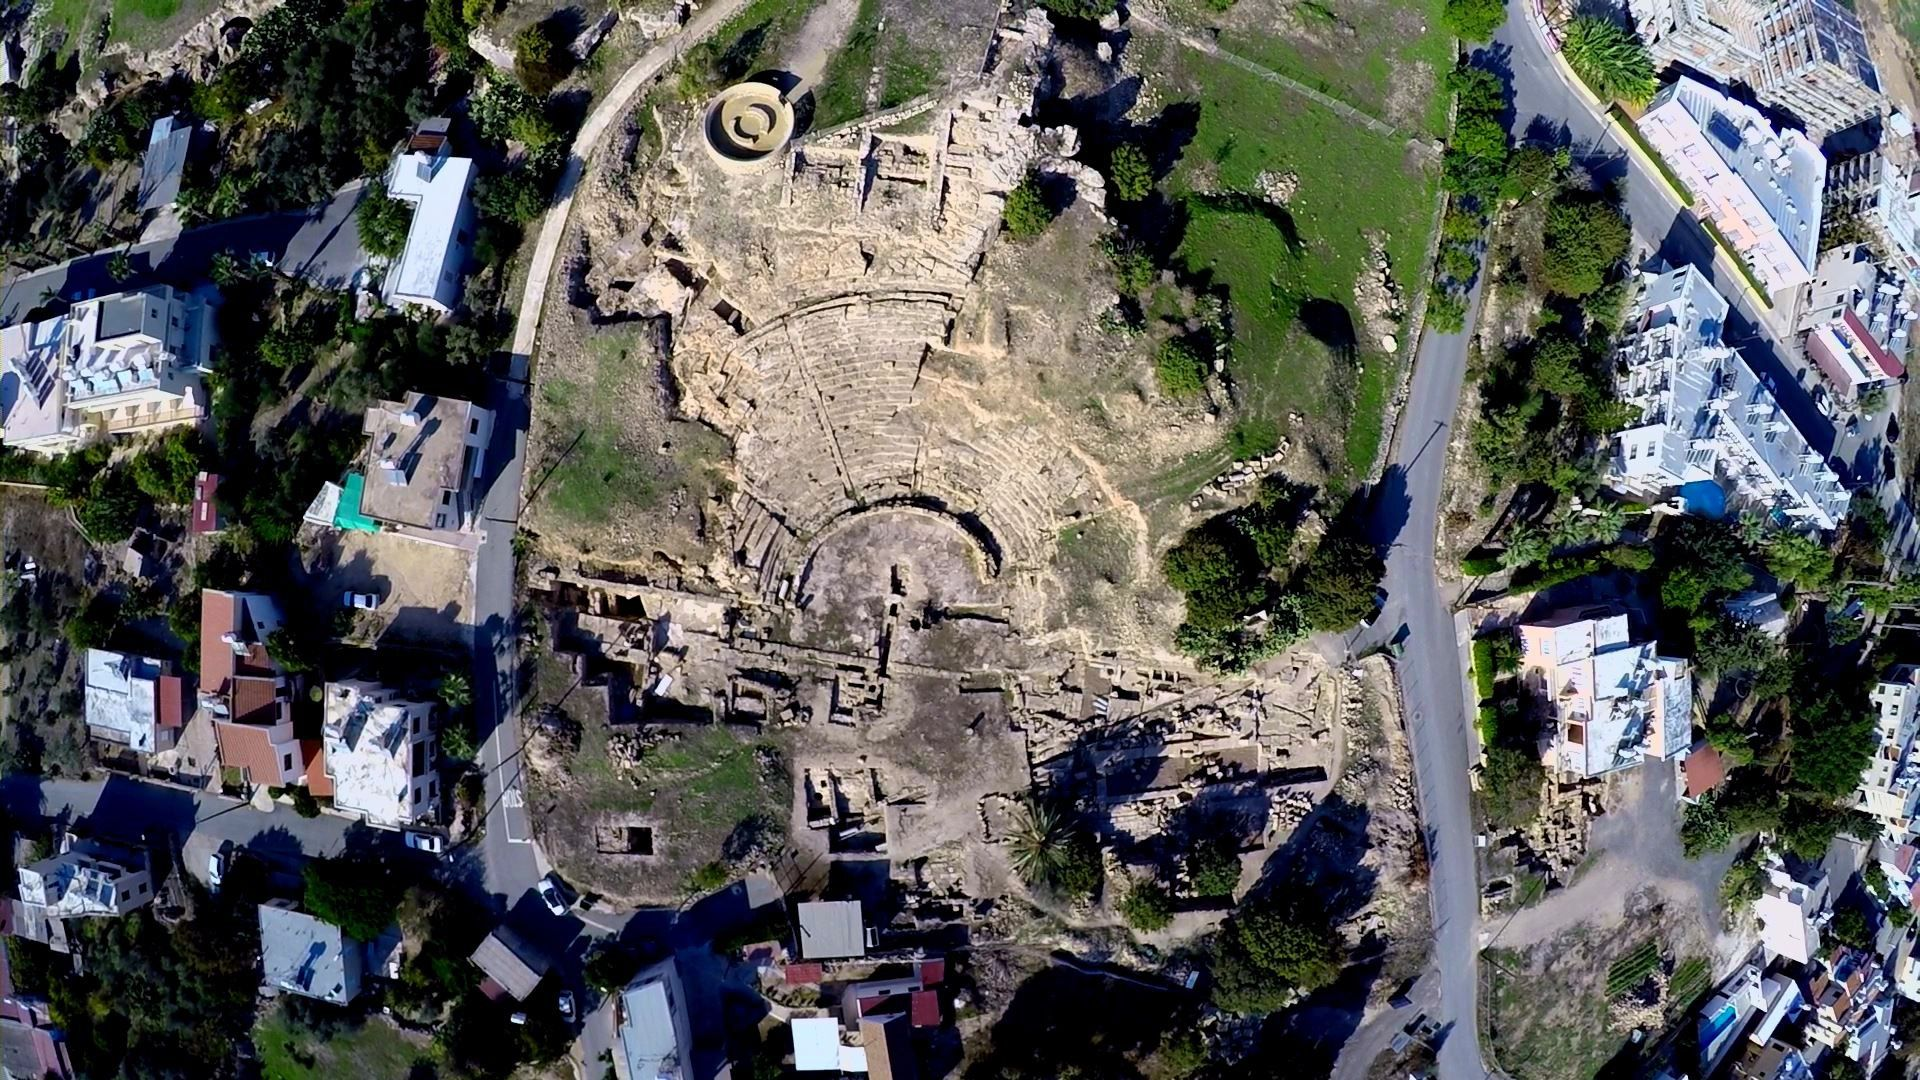 Archaeological excavations conducted in Nea Paphos by the Australian archaeological mission